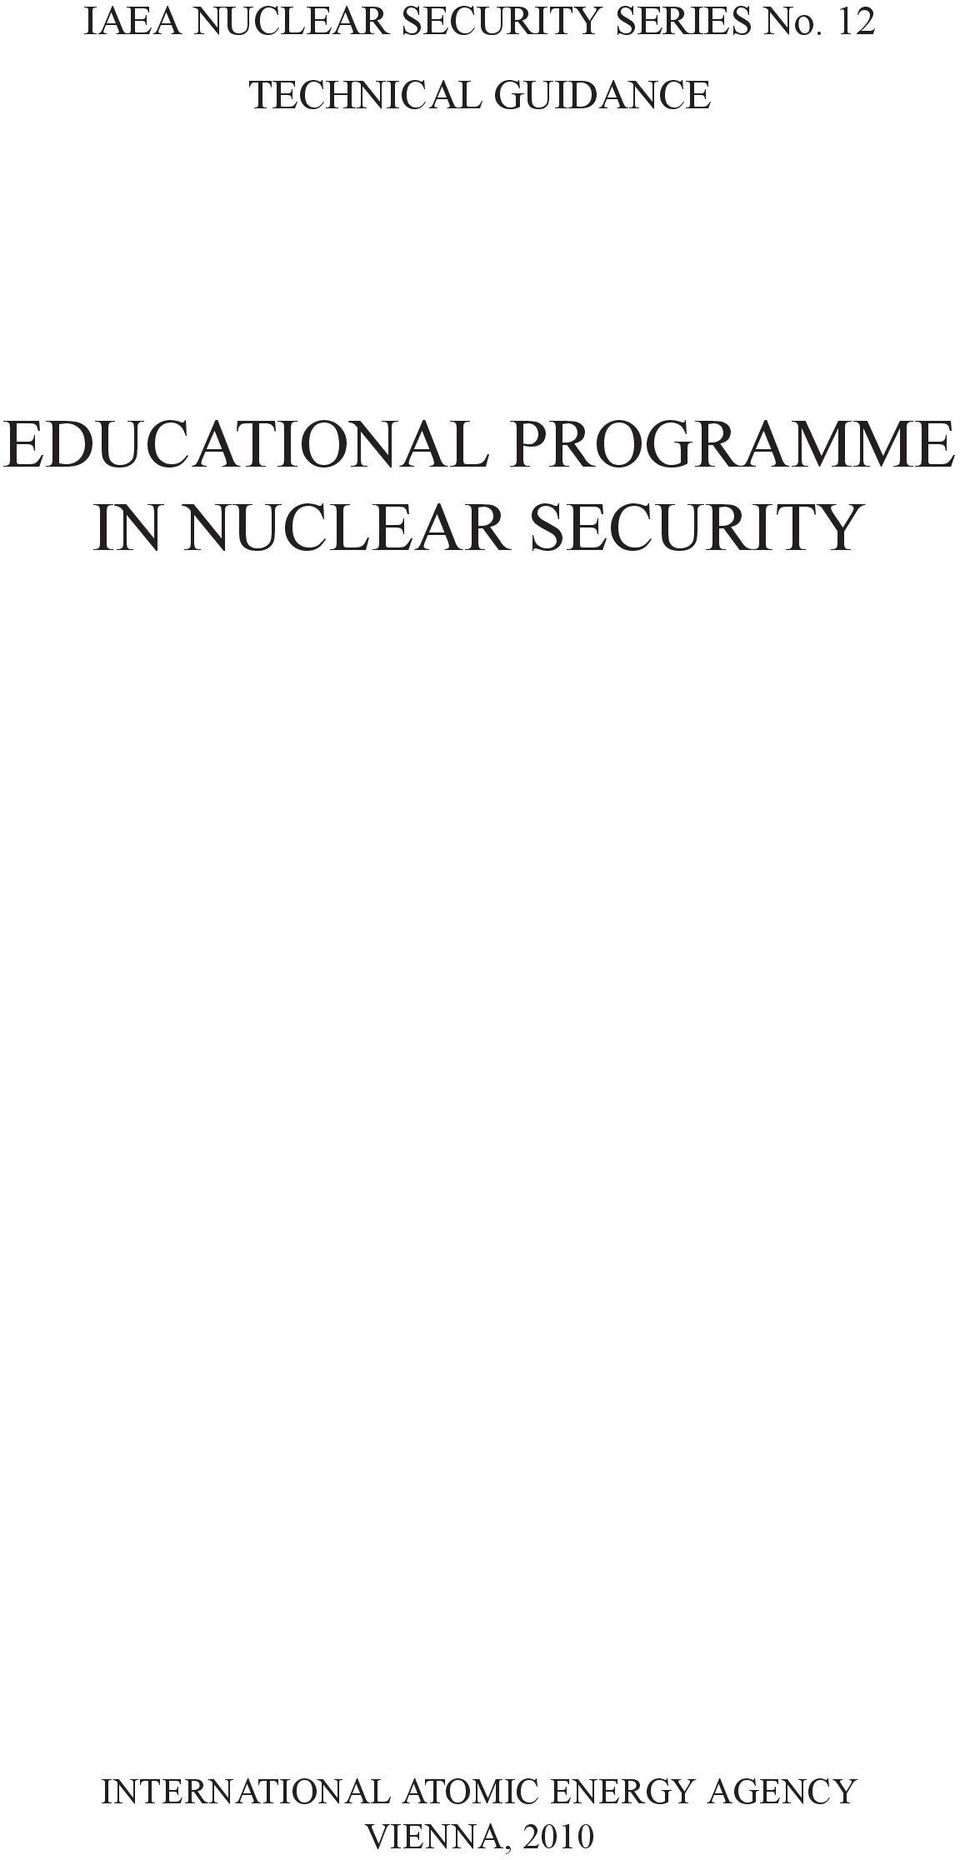 PROGRAMME IN NUCLEAR SECURITY